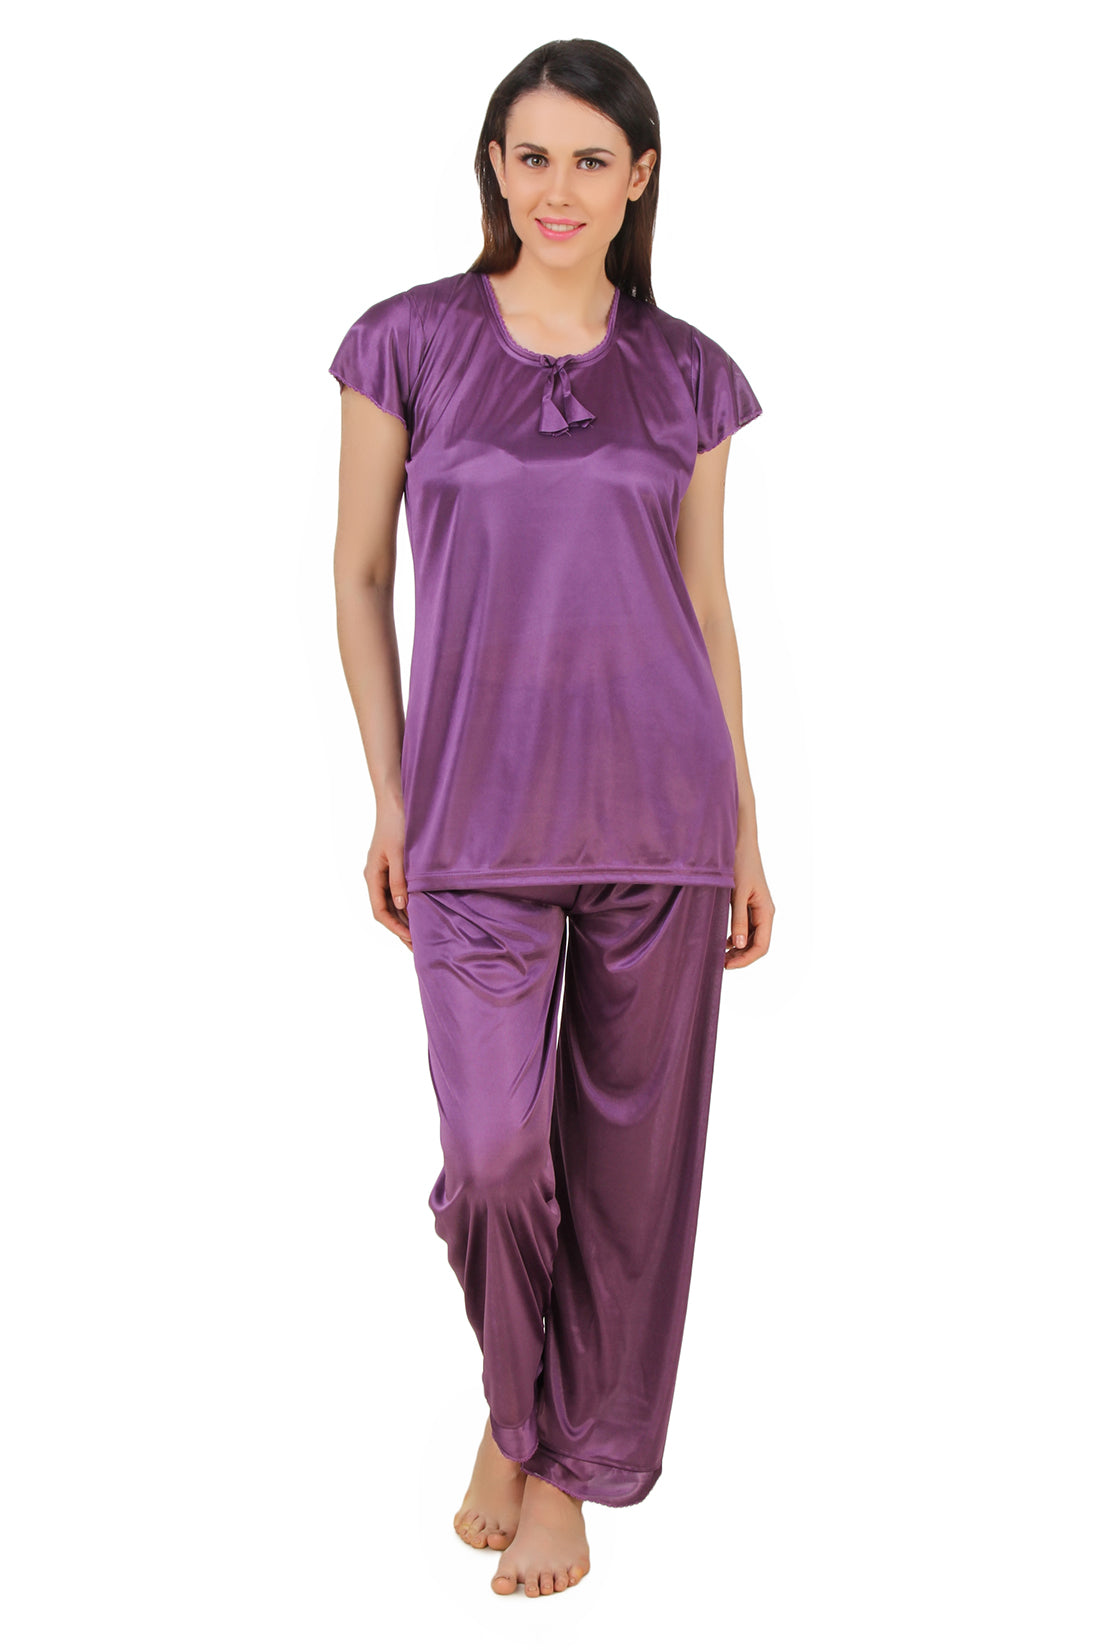 Fasense  Satin  Nightsuit Top & Pyjama Set DP184 - fasensestore